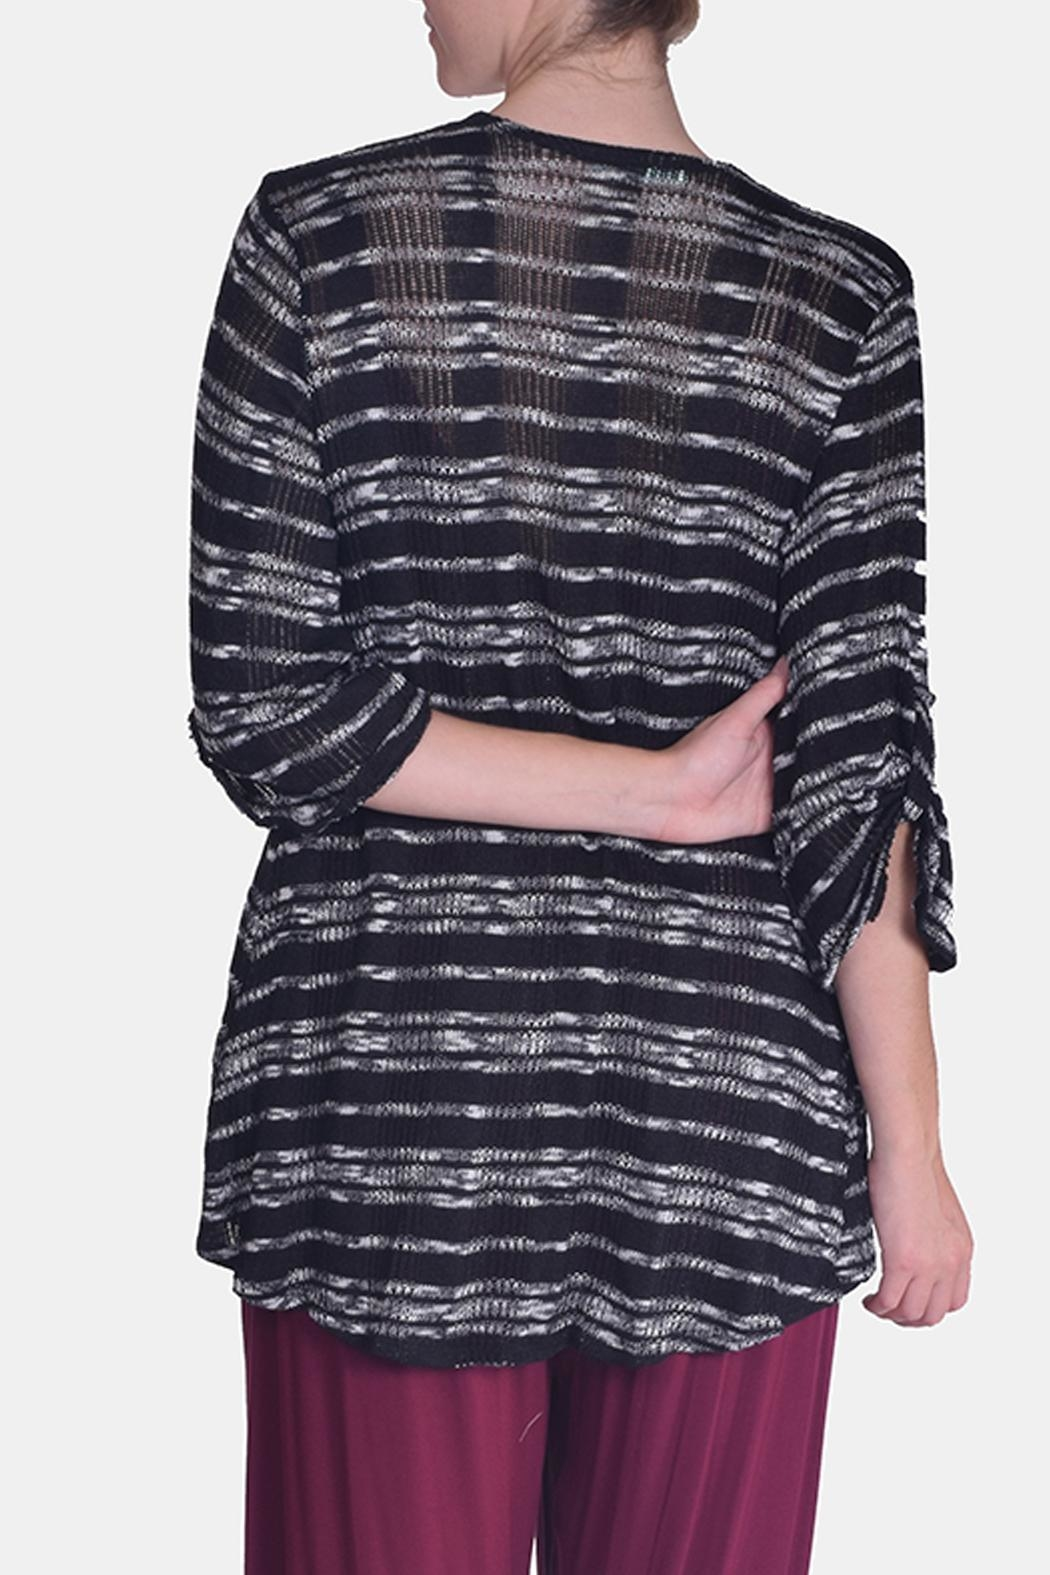 Chris & Carol Midnight Striped Cardigan - Back Cropped Image